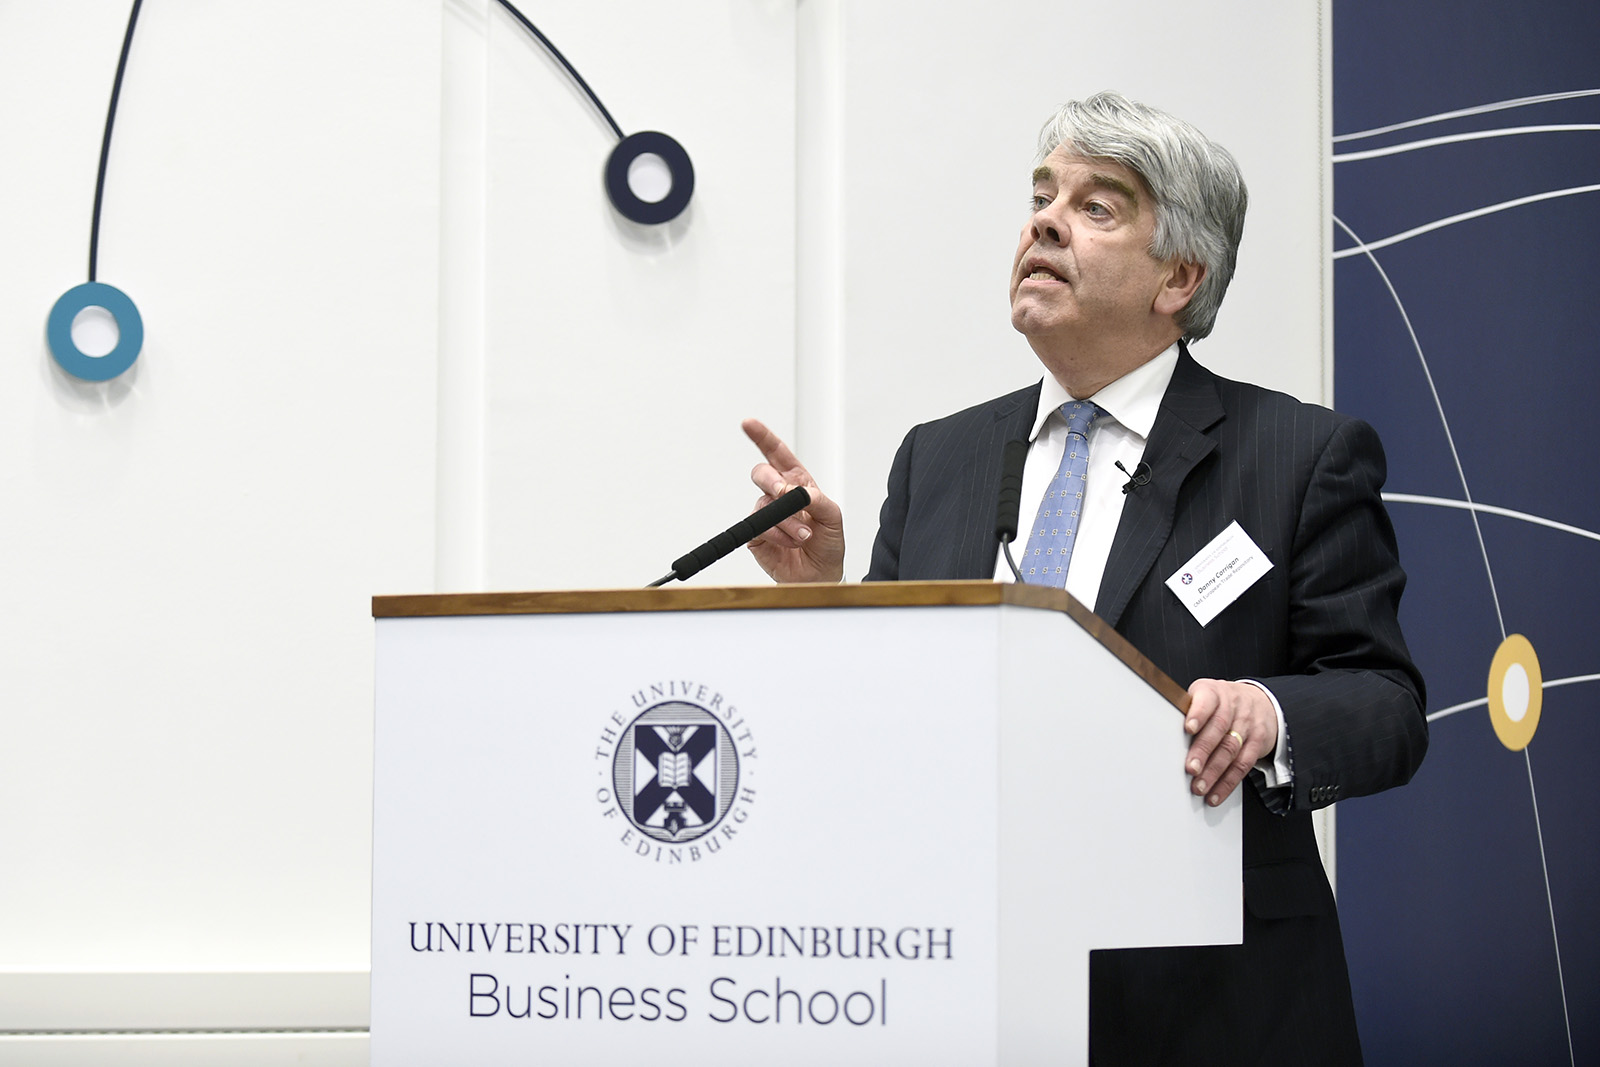 Danny Corrigan speaking at the Business School